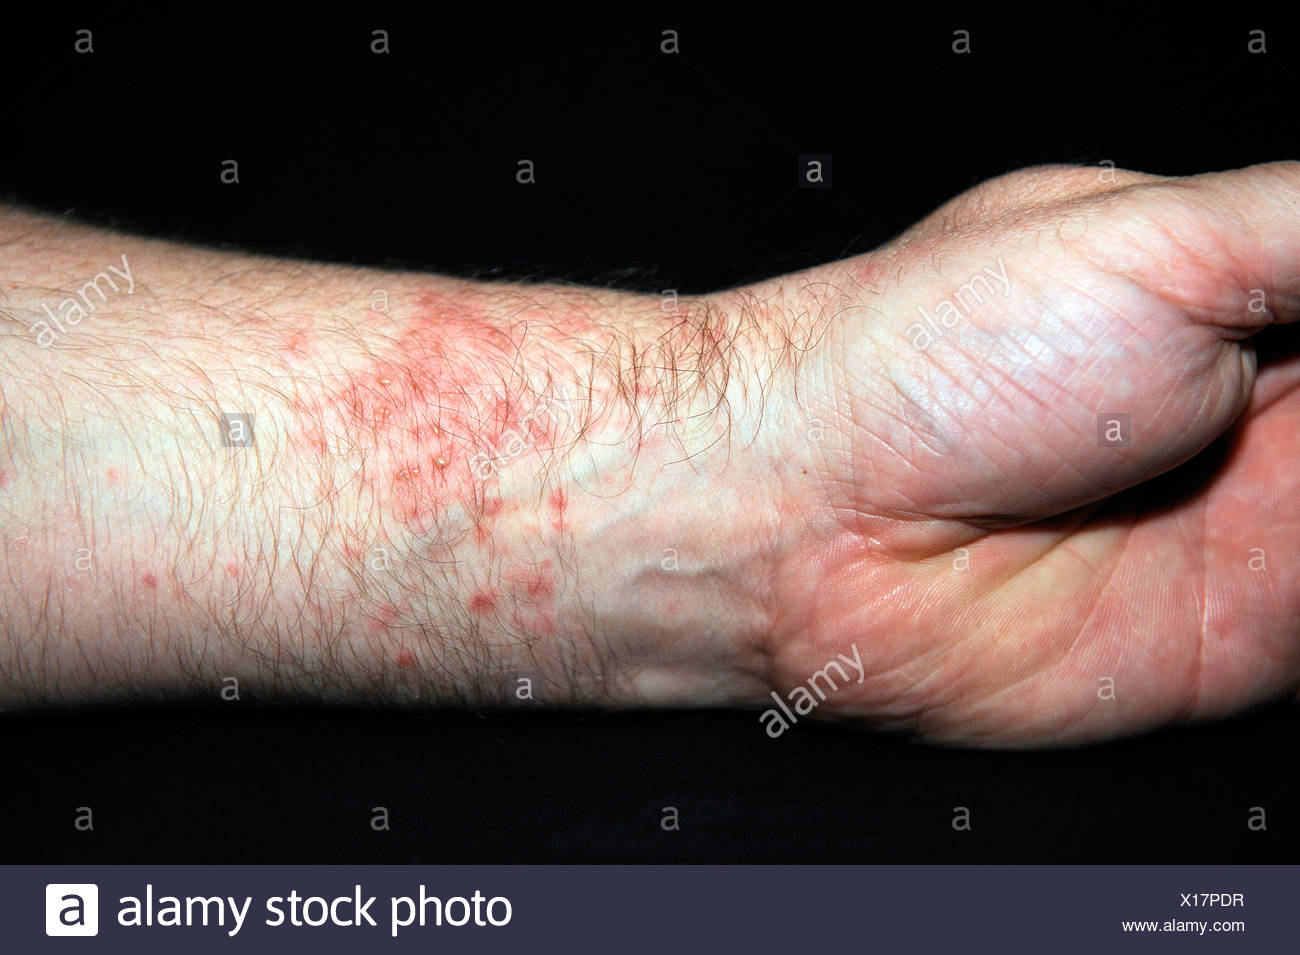 Very red, blistered skin, hives or urticaria after contact with sea anemones (Heteractis spec.) - Stock Image